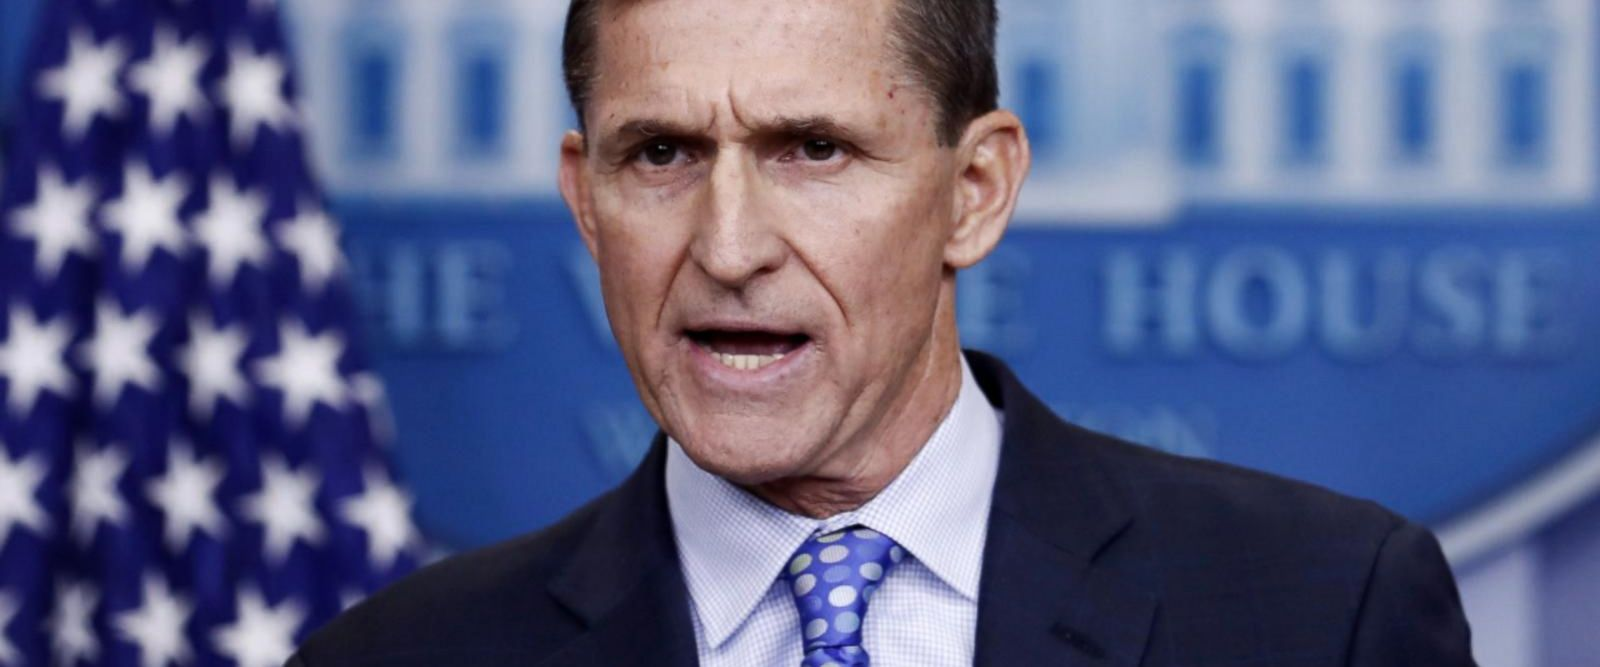 VIDEO: Retired General Flynn's refusal to testify